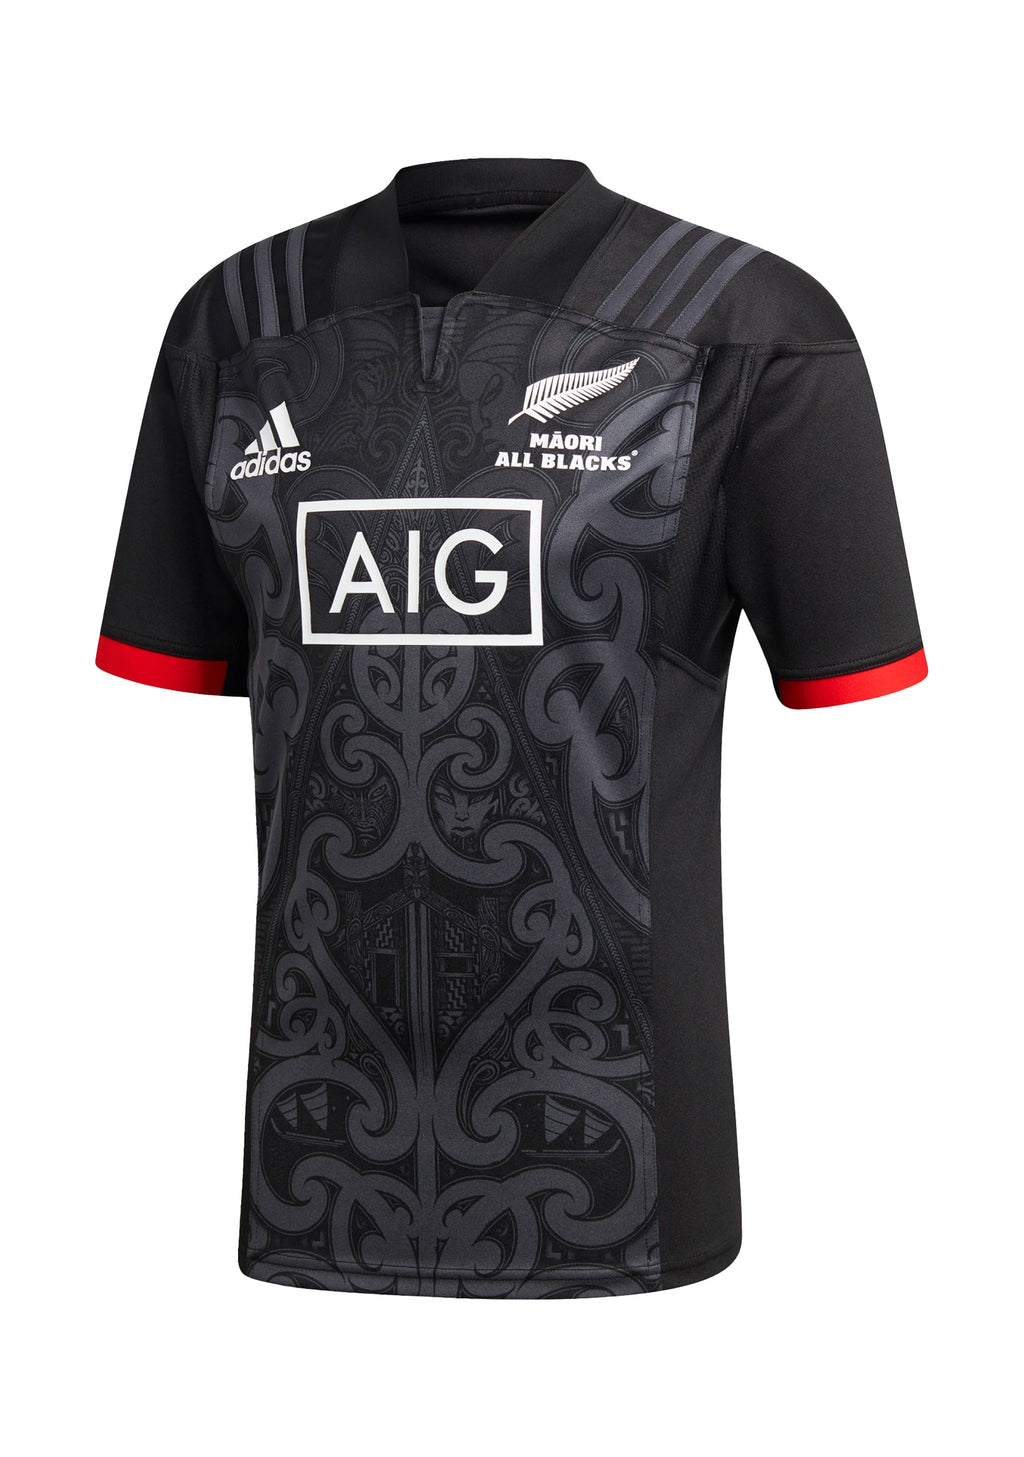 ADIDAS ALL BLACKS MAORI JERSEY MENS <br> DN5870